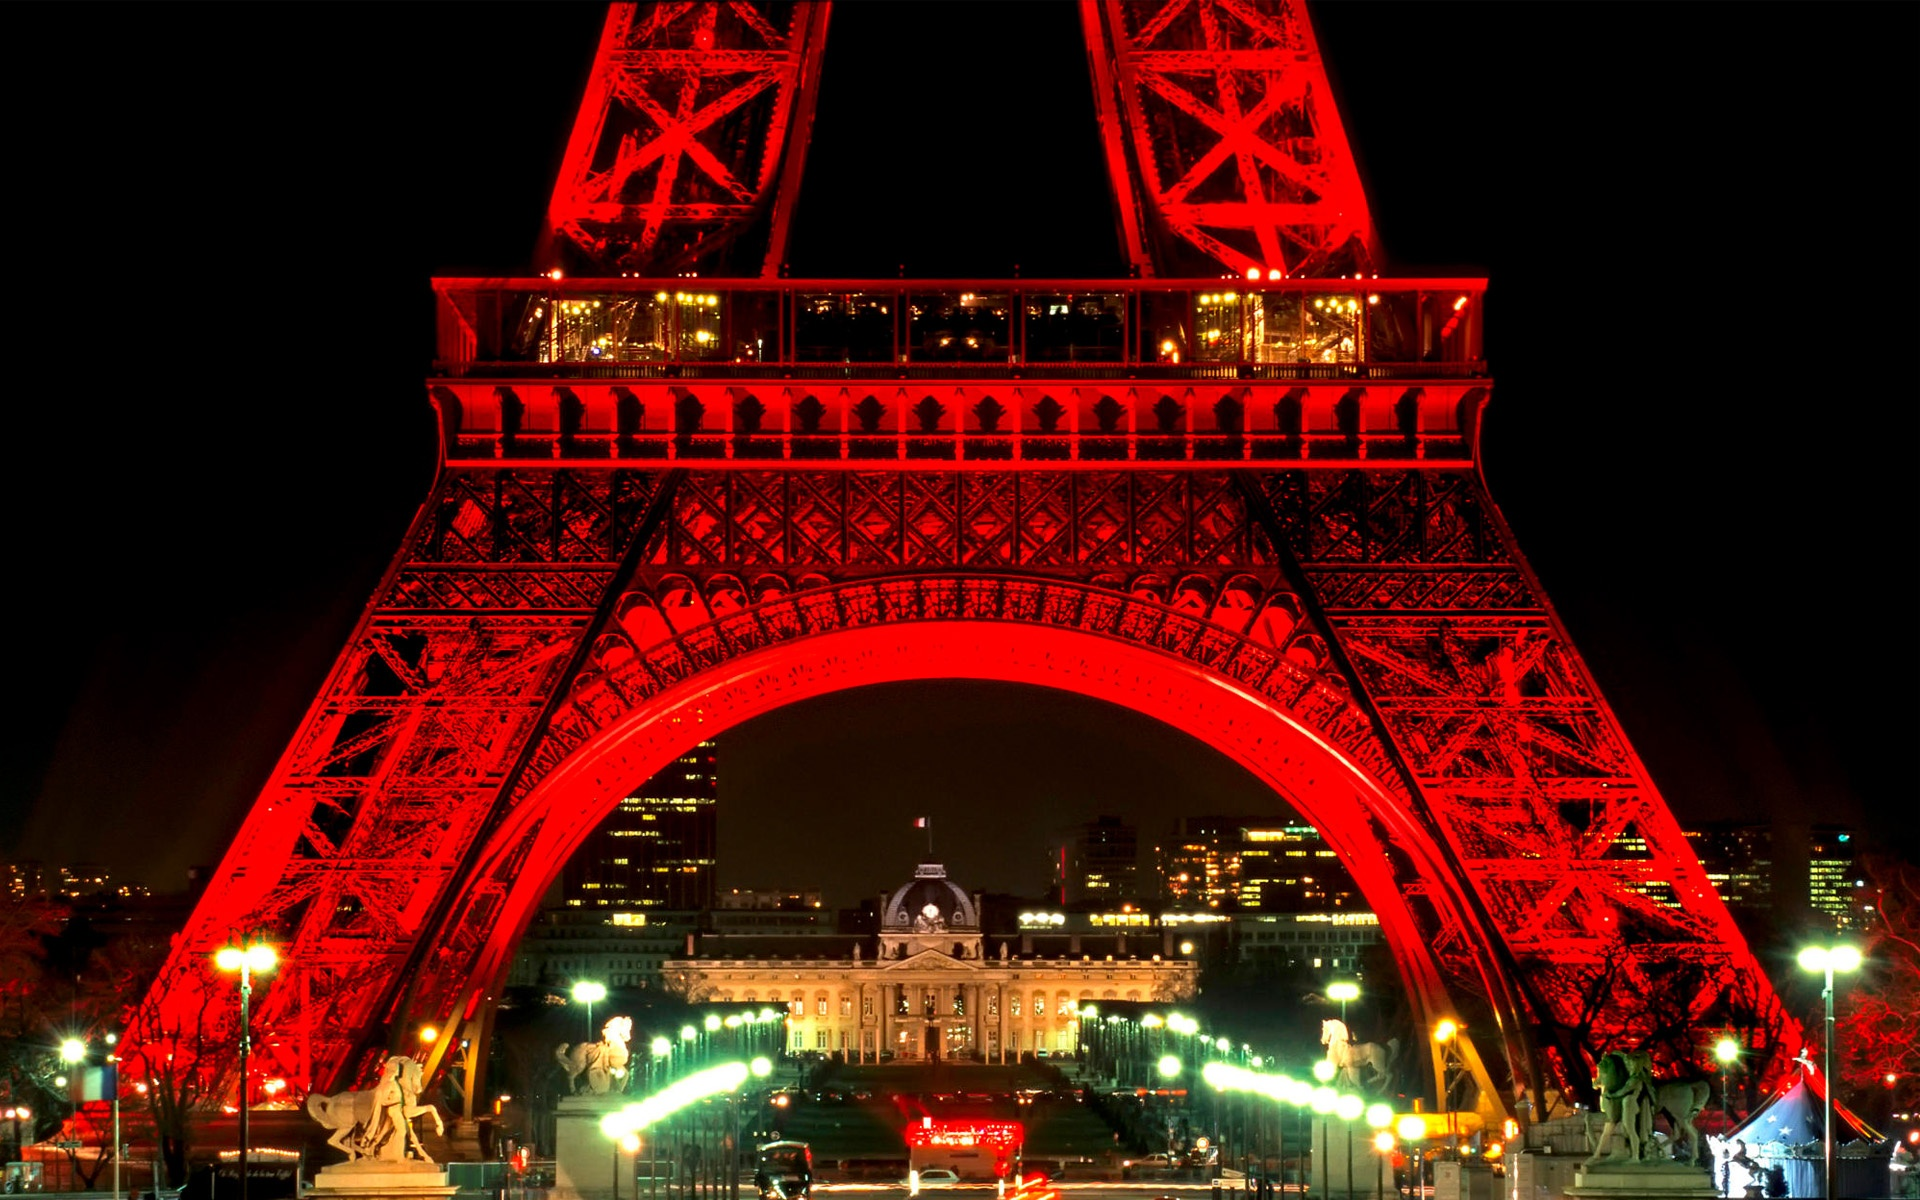 Eiffel Tower At Night Wallpapers In Jpg Format For Free Download